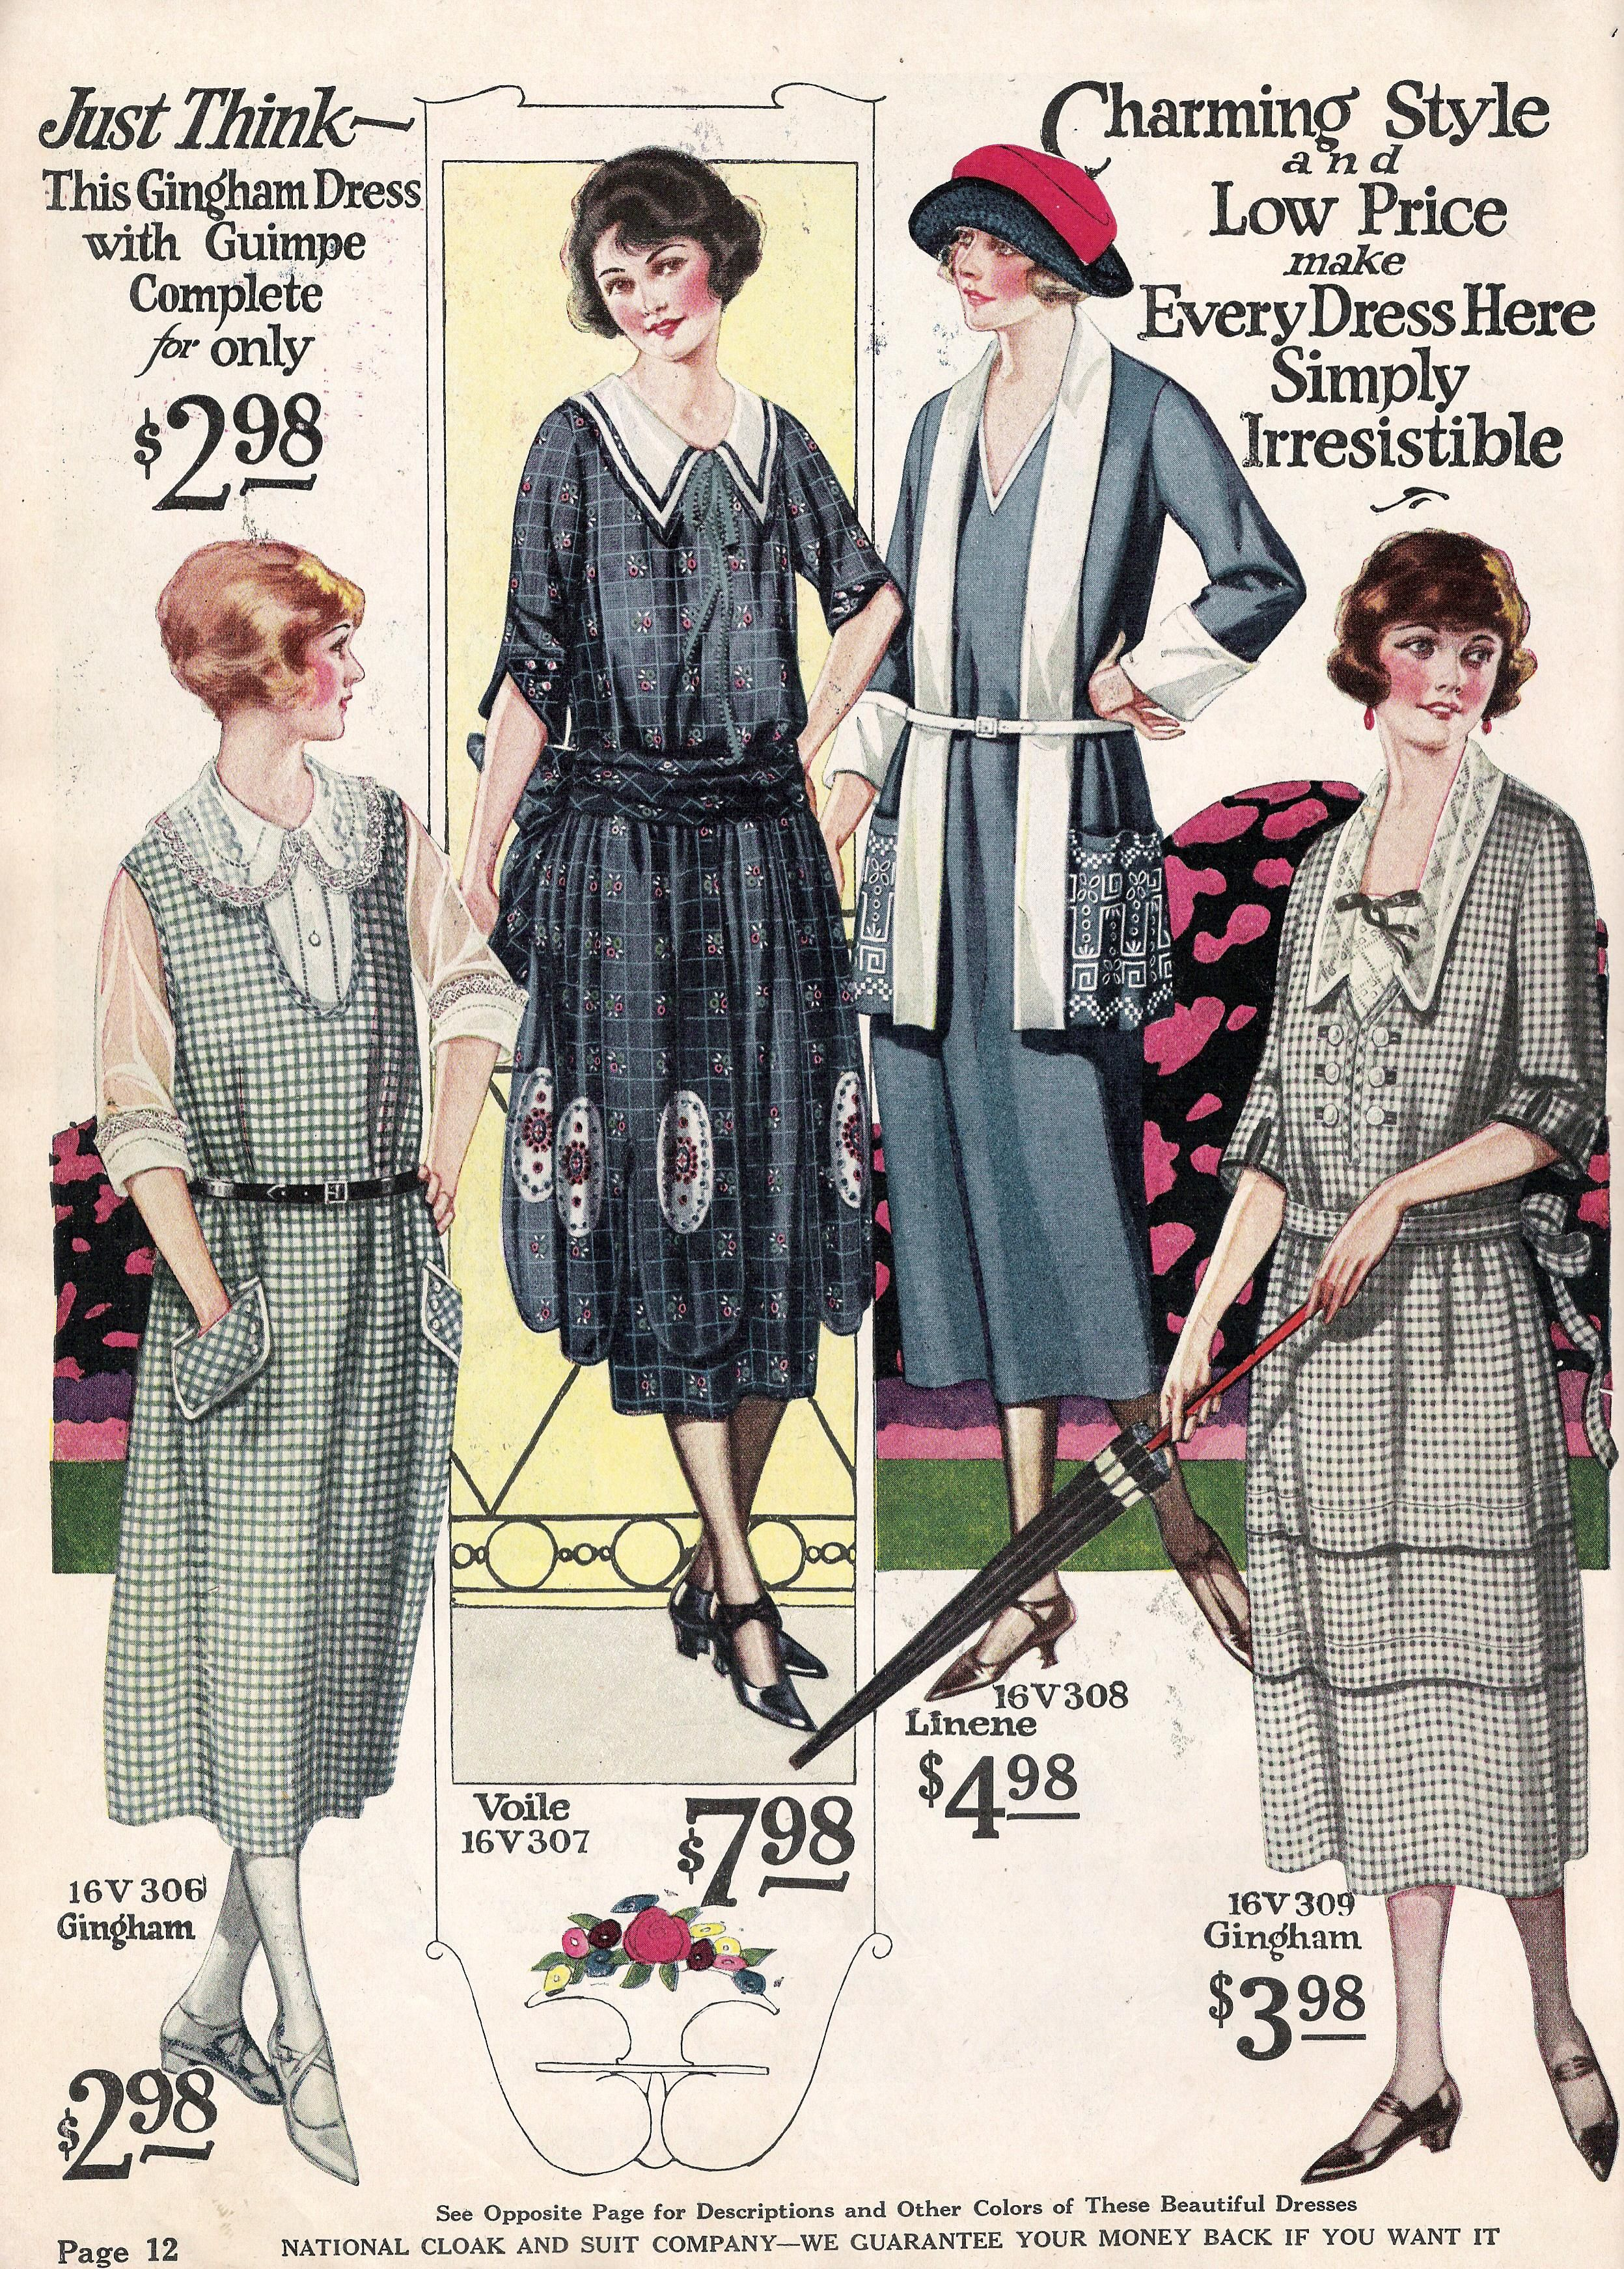 1920s House Dresses History Patterns 1920s Outfits 1920s Fashion Fashion [ 3486 x 2495 Pixel ]